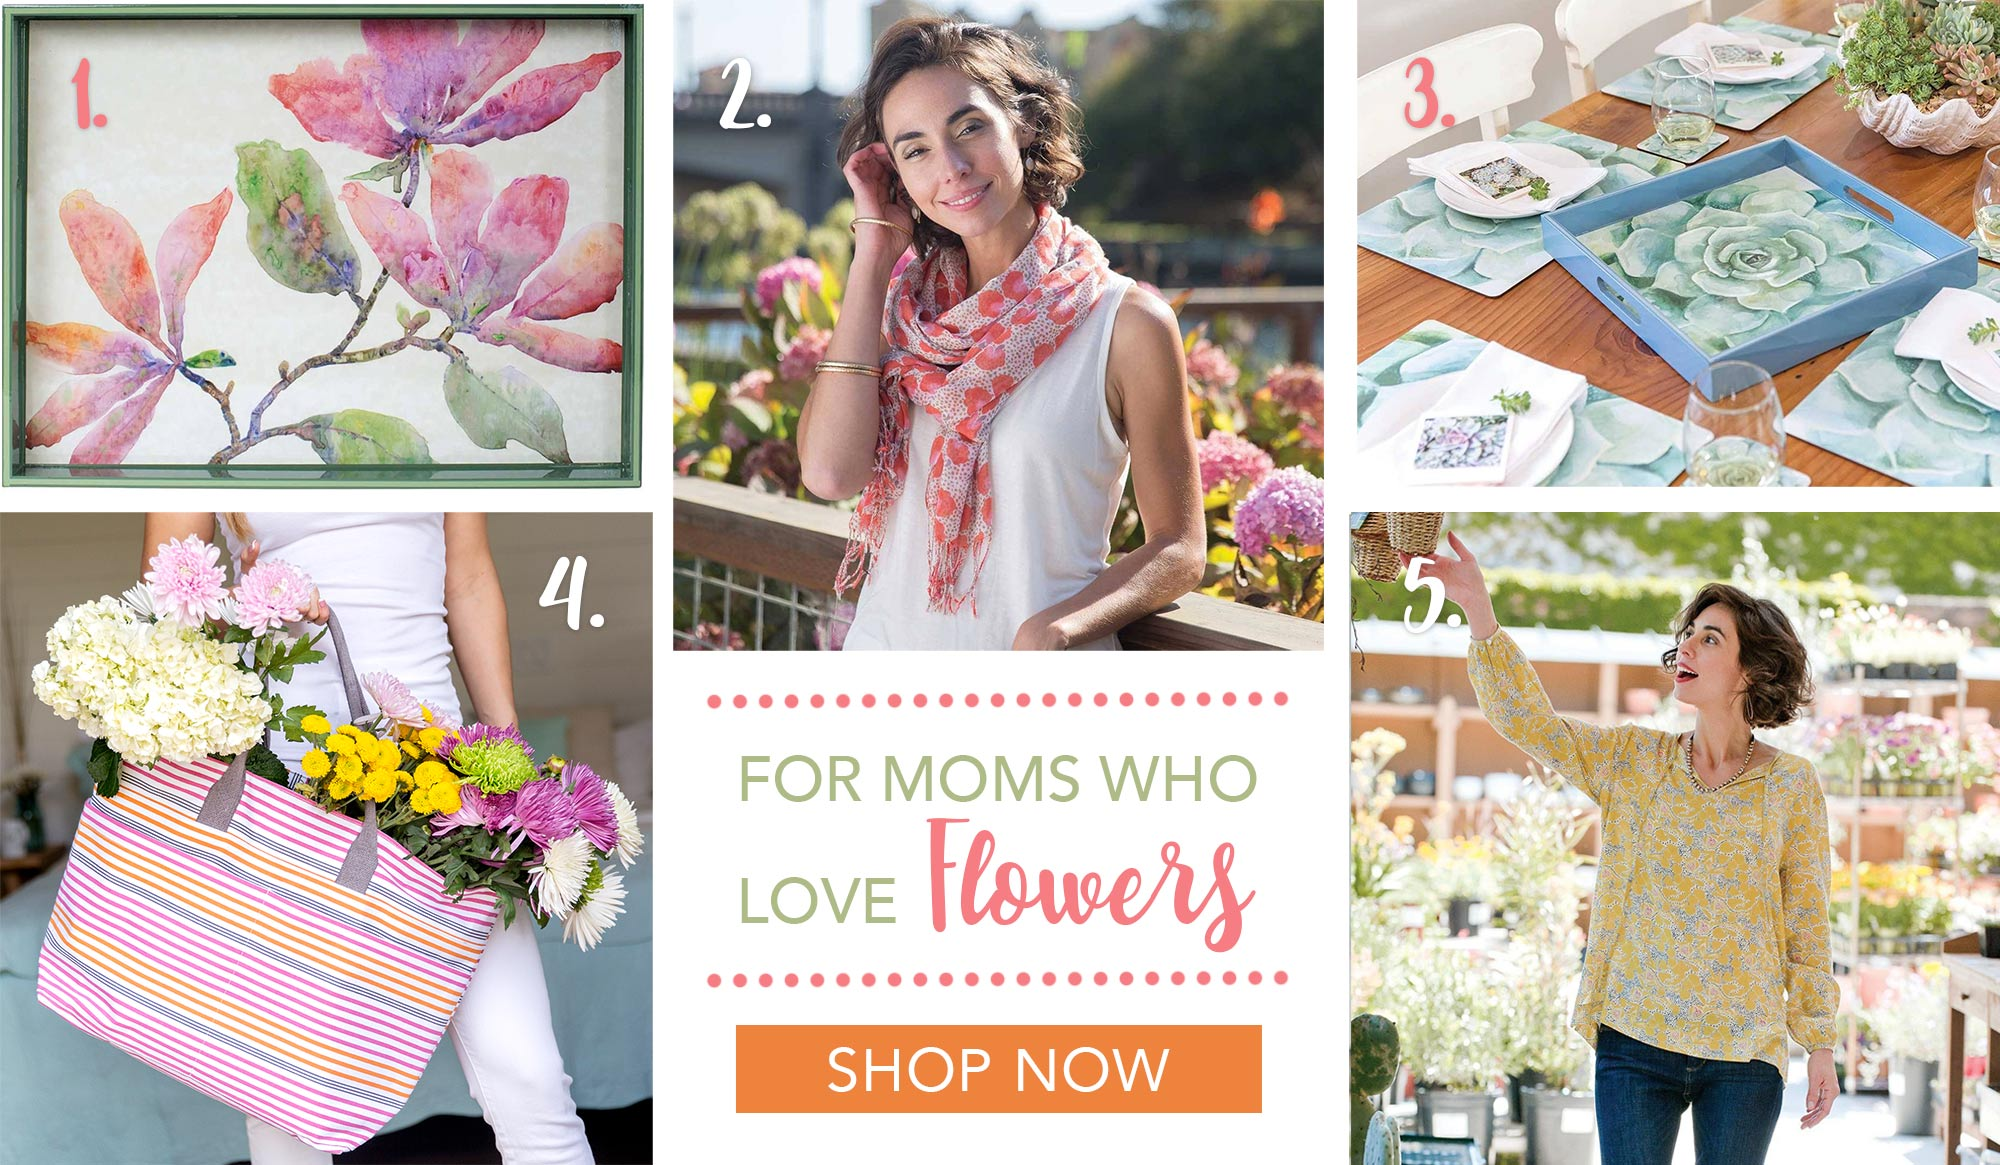 Beautiful gifts for mother's day - floral print scarves and flower art lacquer trays